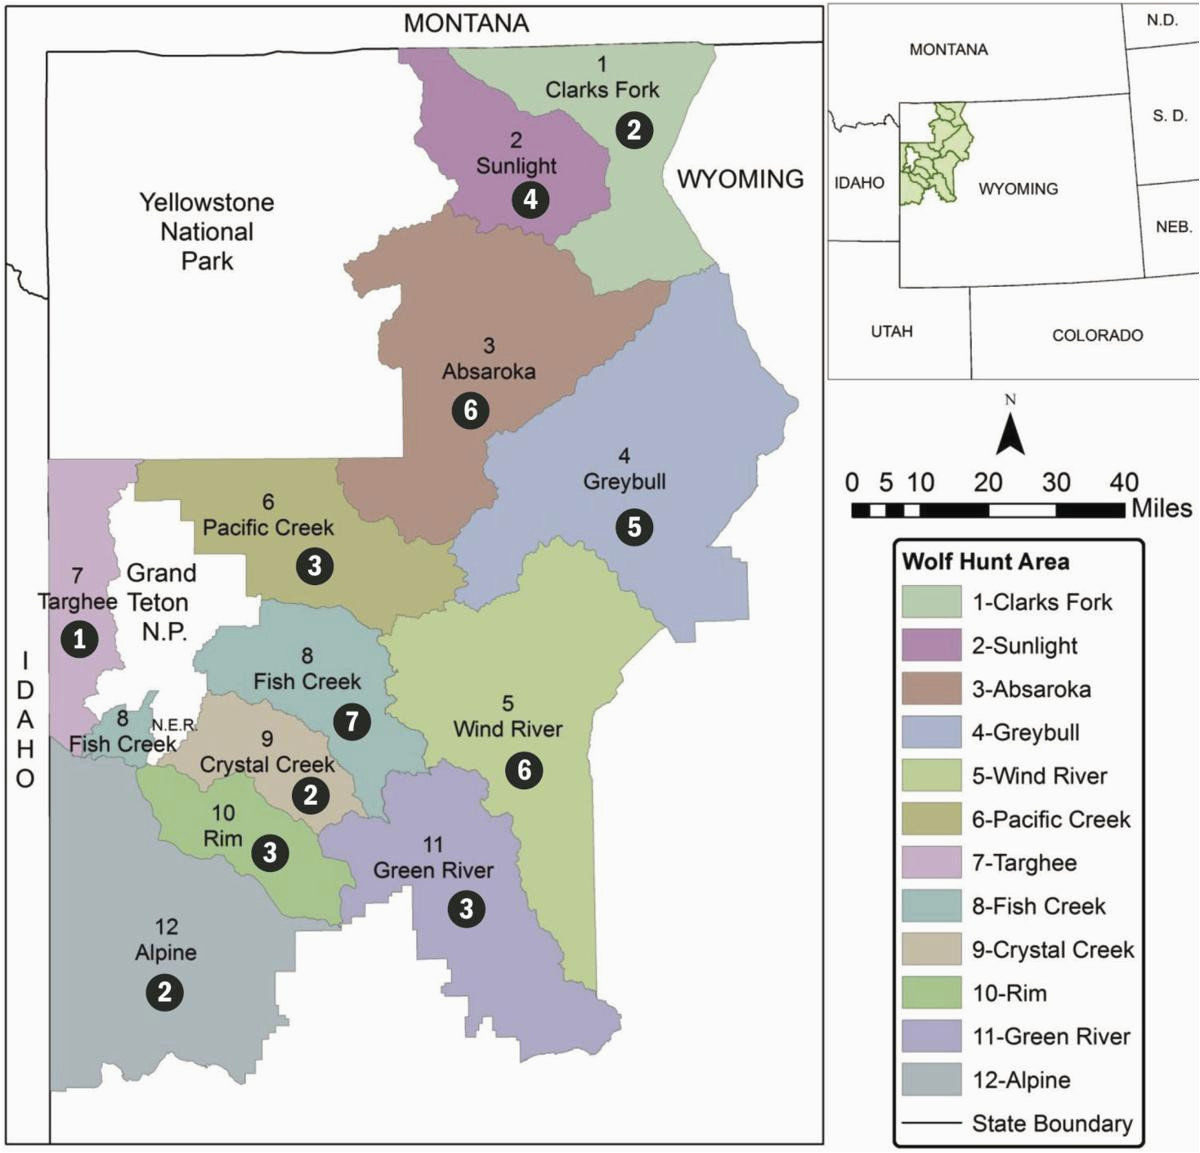 Colorado Snow Pack Map Wyoming Sets Wolf Population Goal Of 160 Environmental